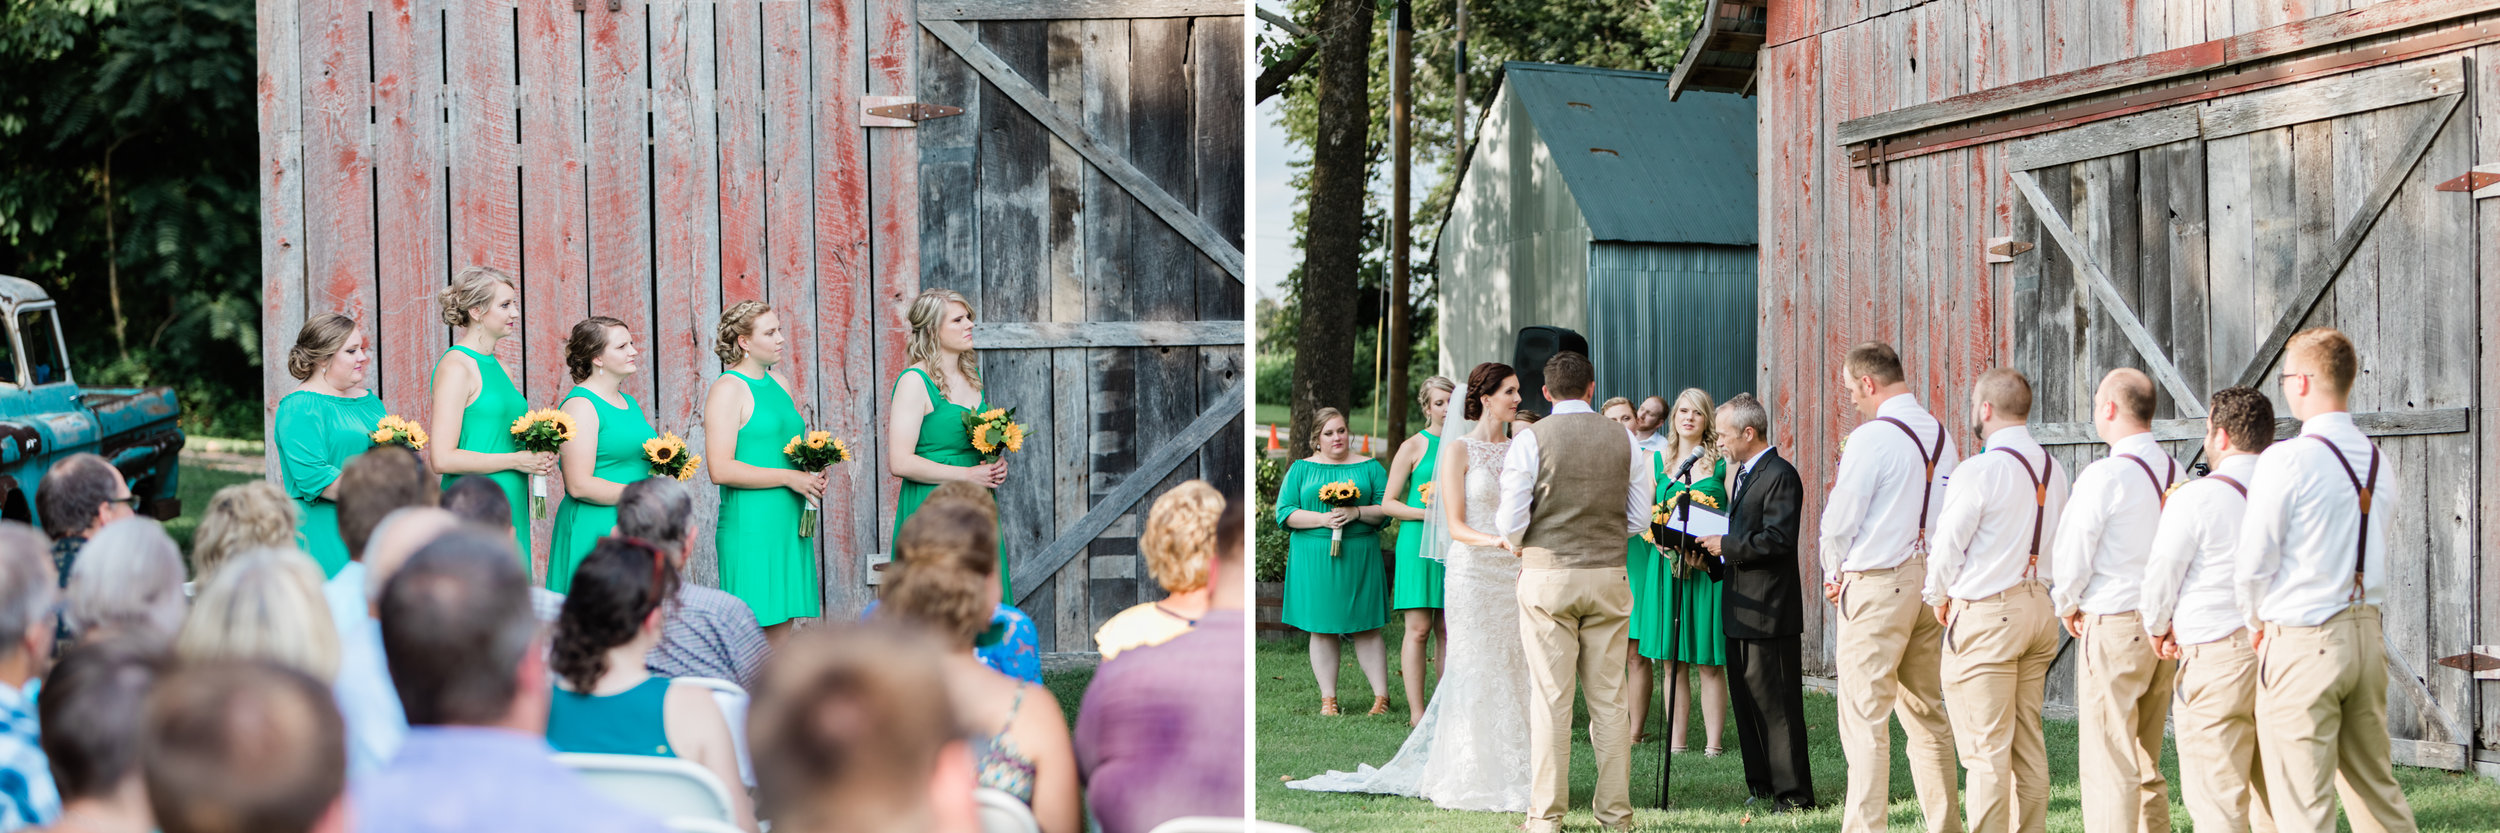 Bentonville Wedding Photographer Holland Barn 12.jpg